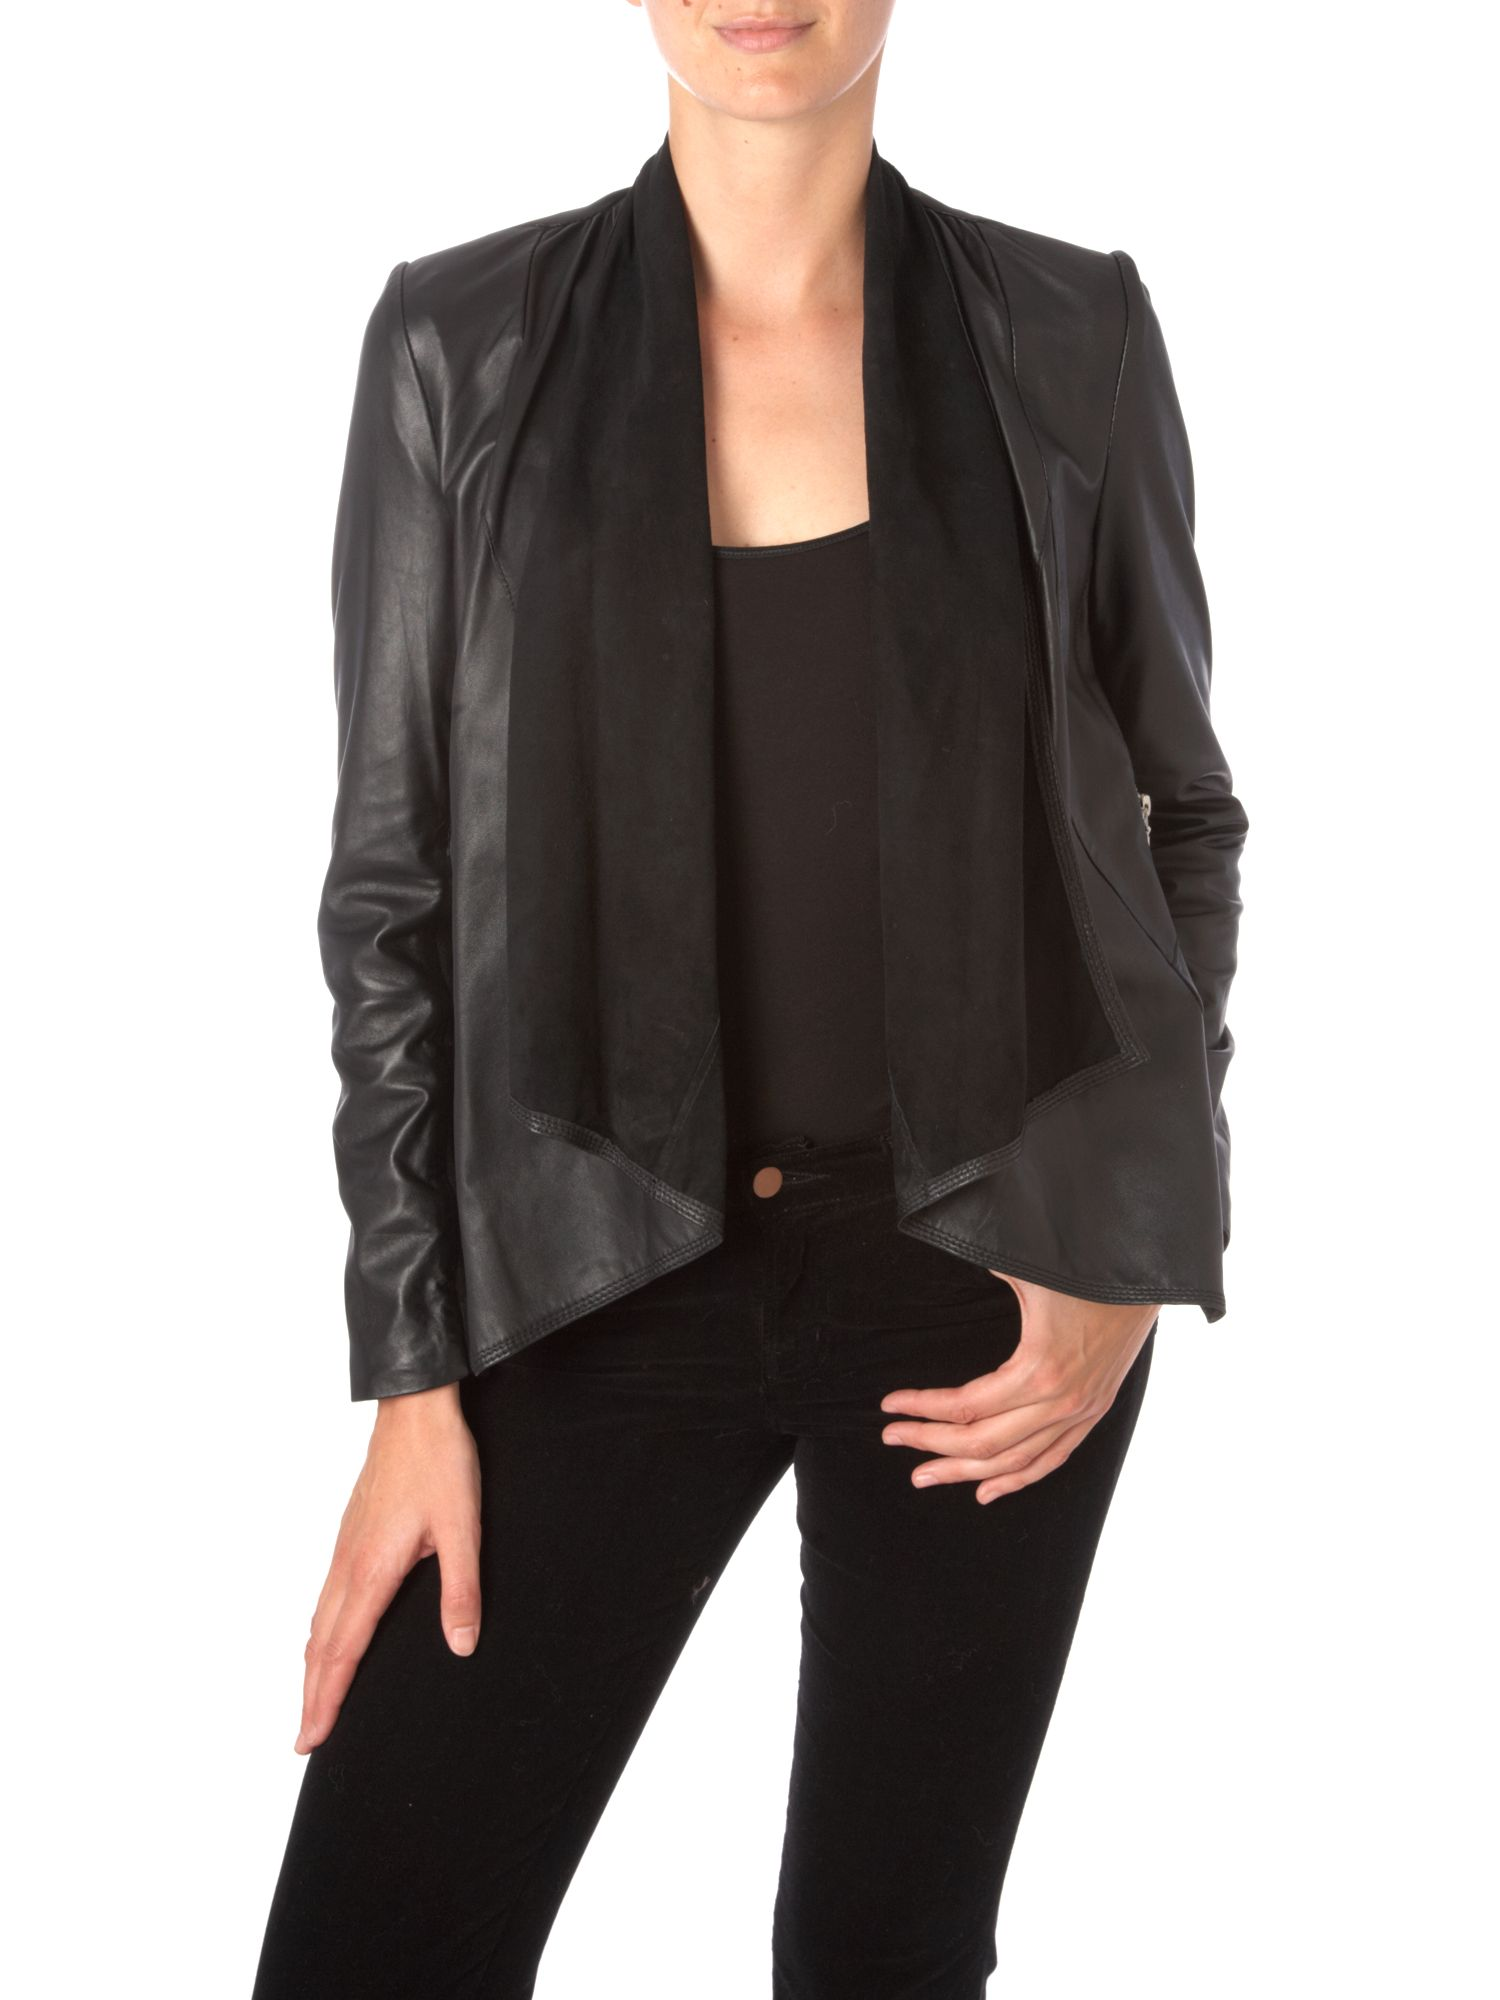 Leather jacket reviews 4